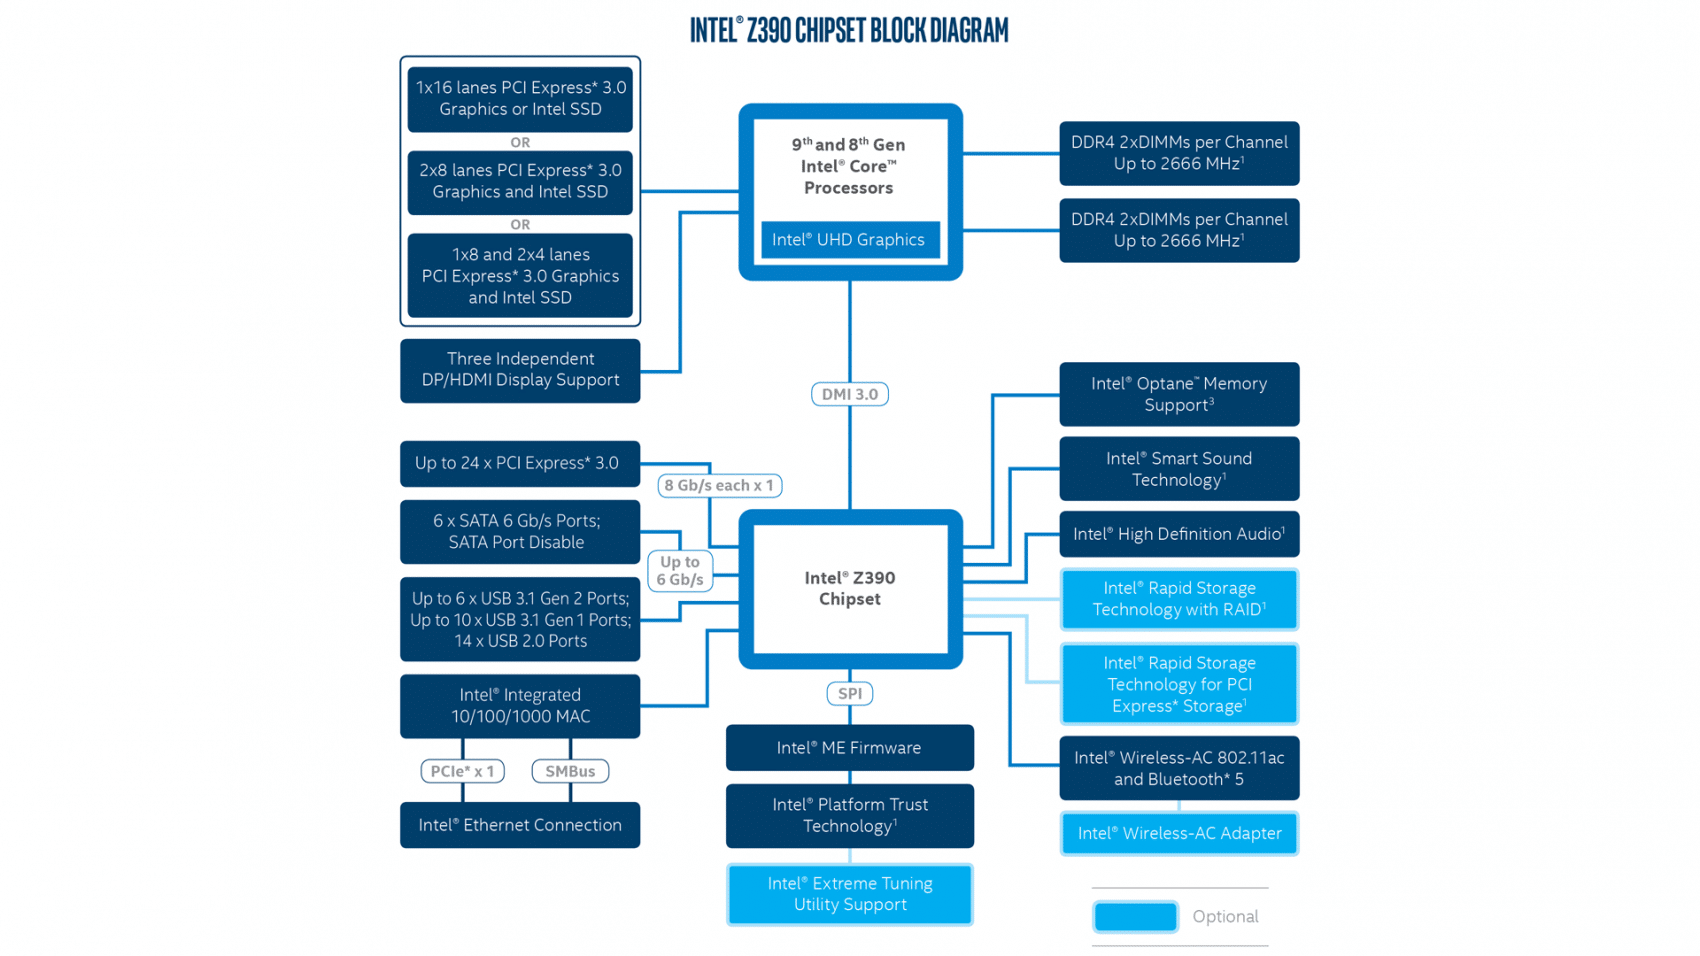 Diagramme chipset Intel Z390